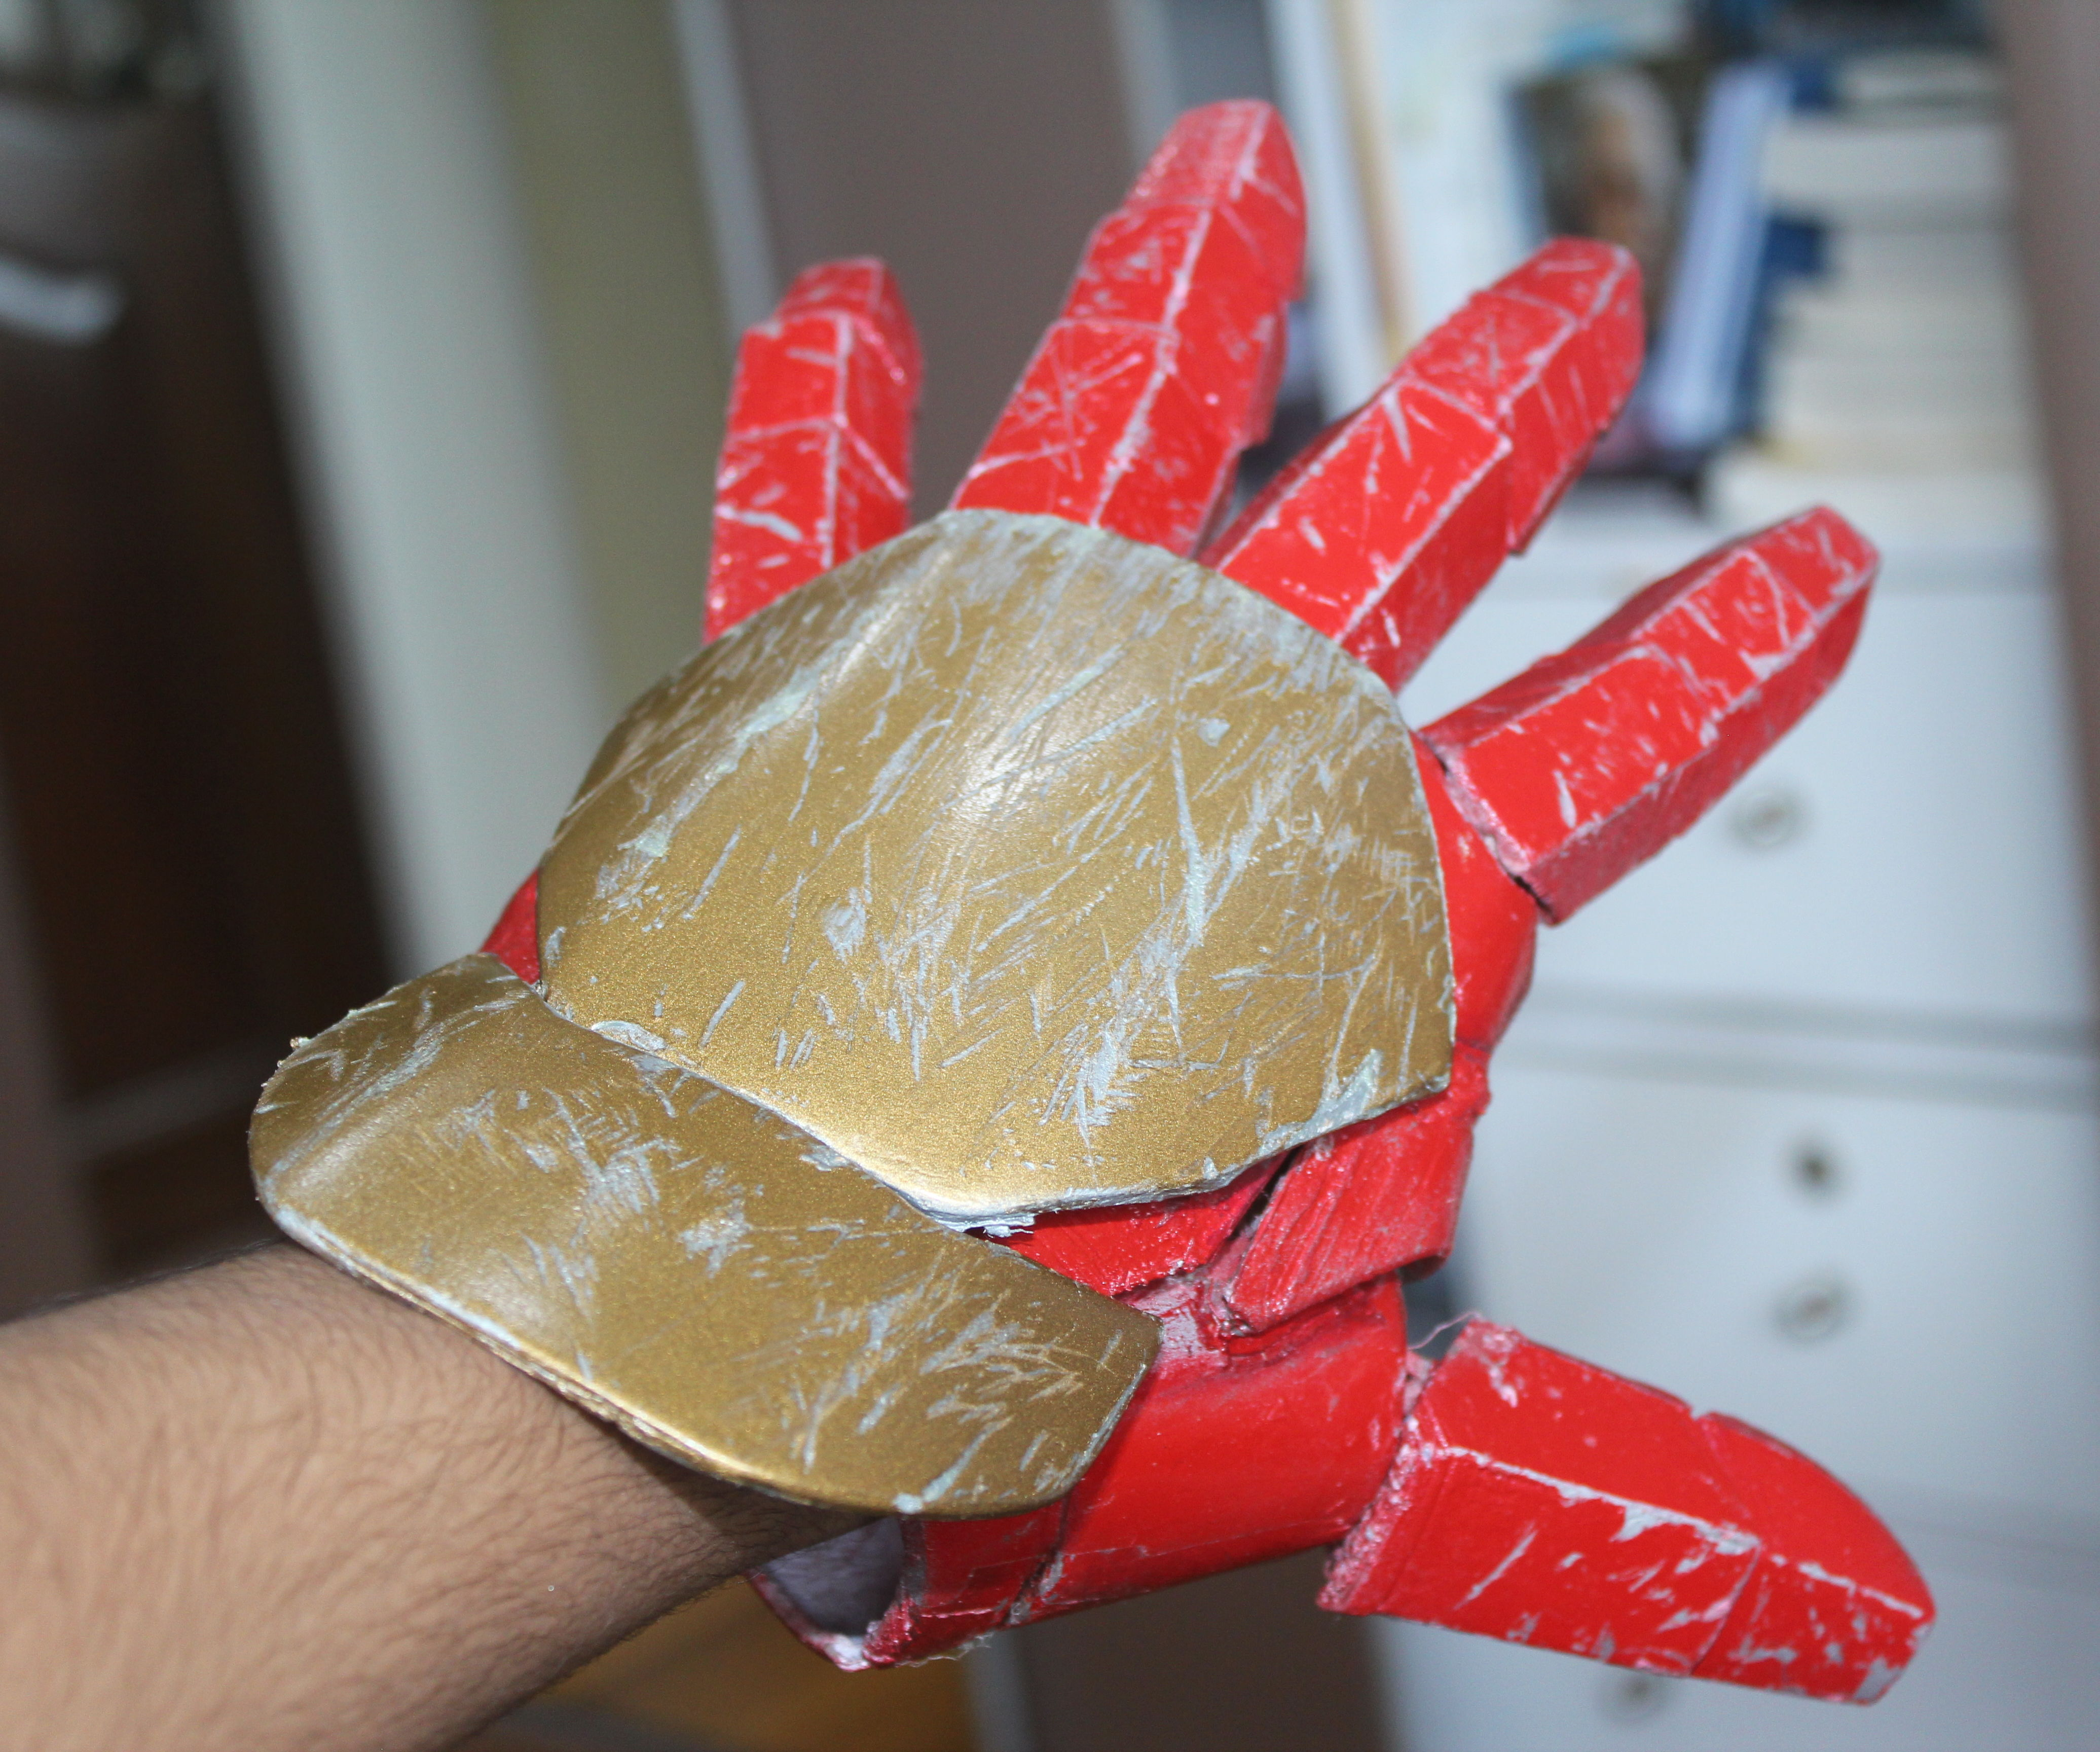 Realistic MK 42 Iron man Glove 3D printed with weathering